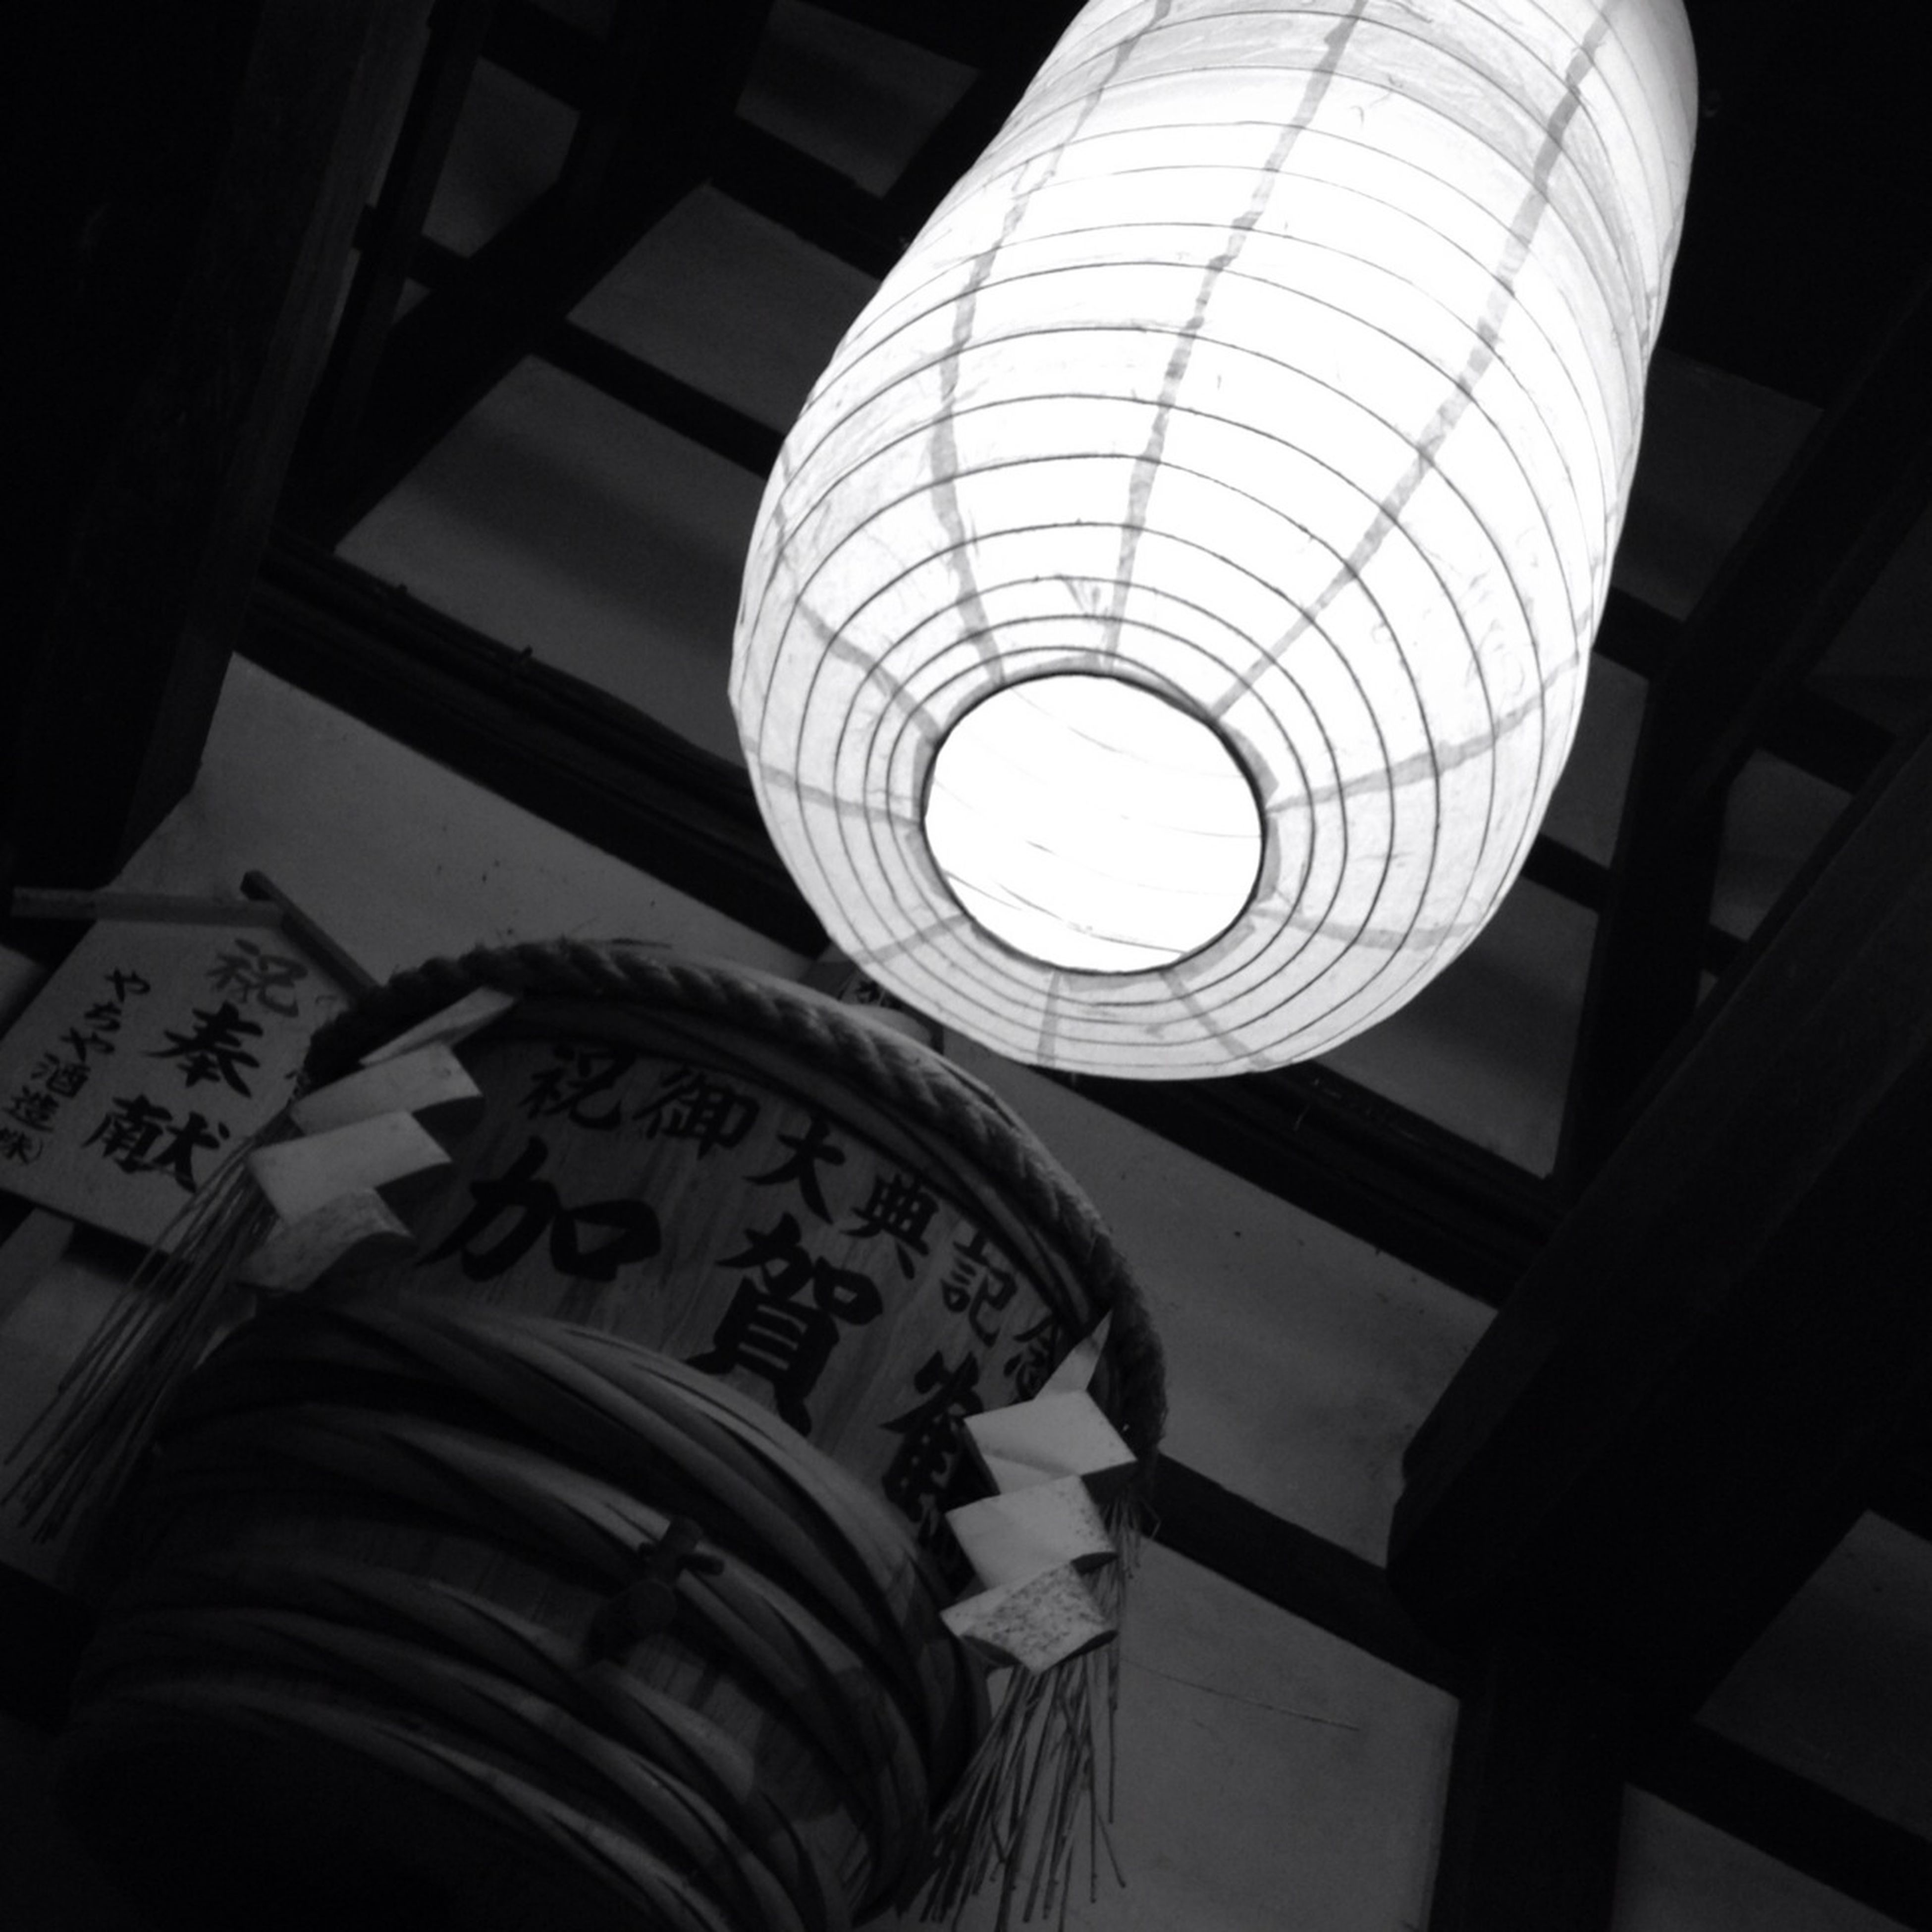 low angle view, indoors, illuminated, architecture, lighting equipment, built structure, ceiling, modern, electric lamp, electric light, electricity, no people, hanging, design, building exterior, pattern, directly below, building, technology, communication